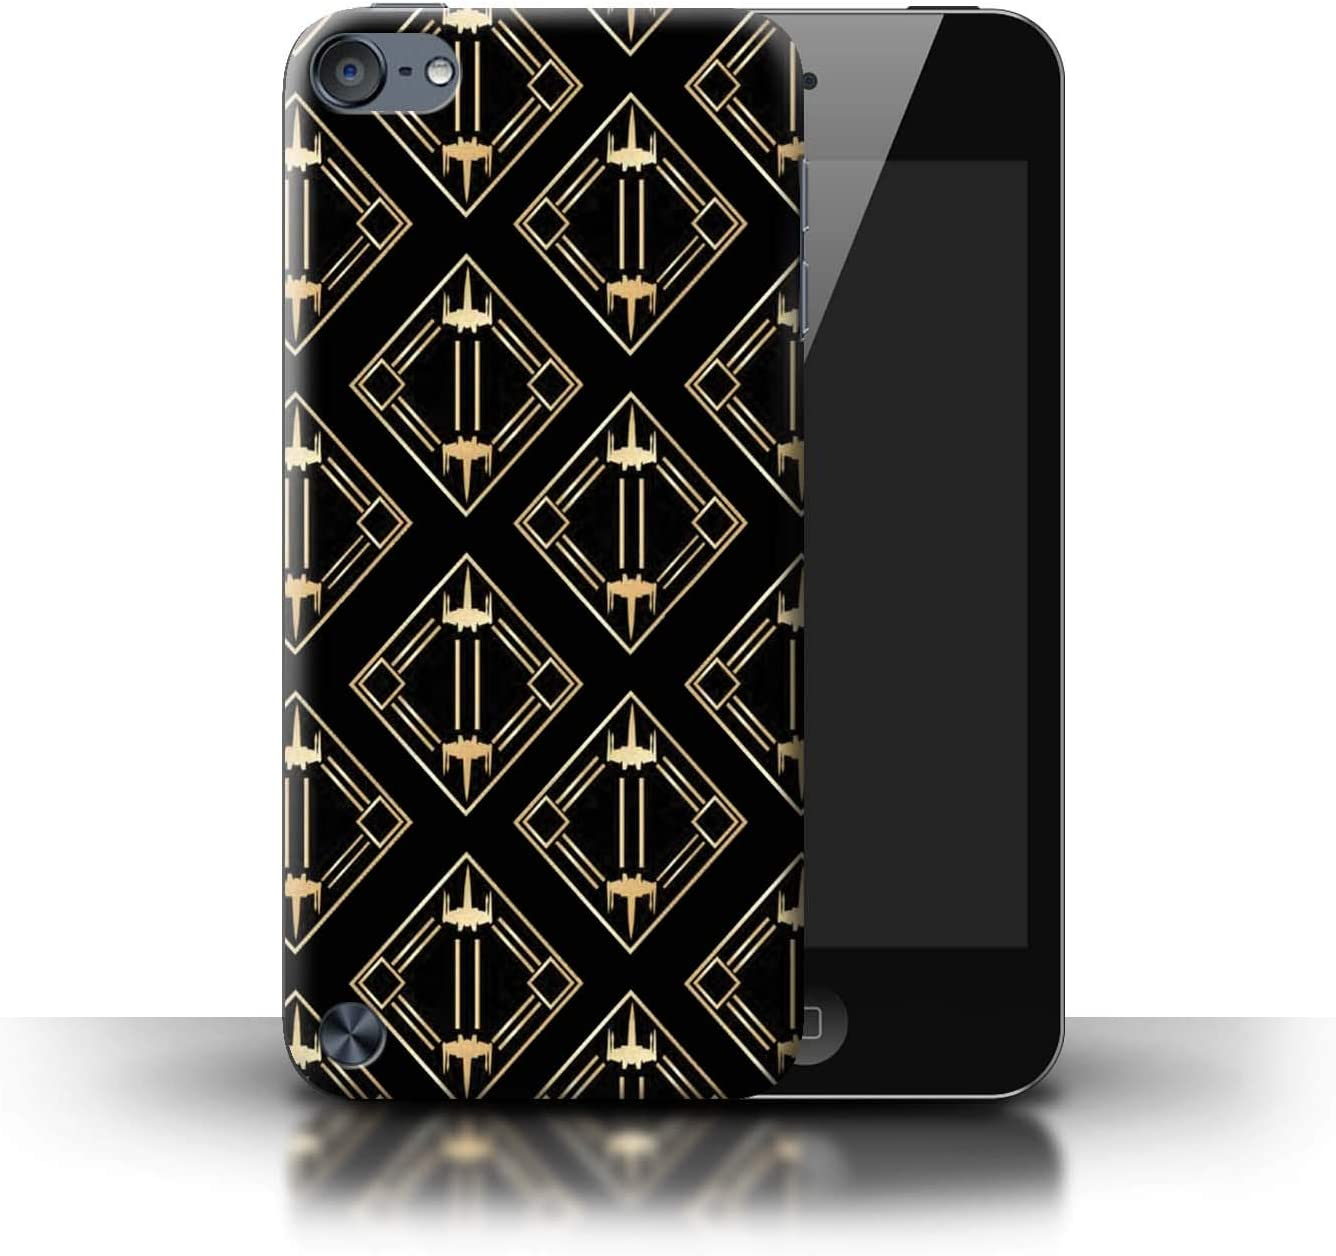 Phone Case For Apple Ipod Touch 5 Star Wars Wallpaper Golden X Wing Fighter Design Transparent Clear Ultra Slim Thin Hard Back Cover Amazon Co Uk Computers Accessories